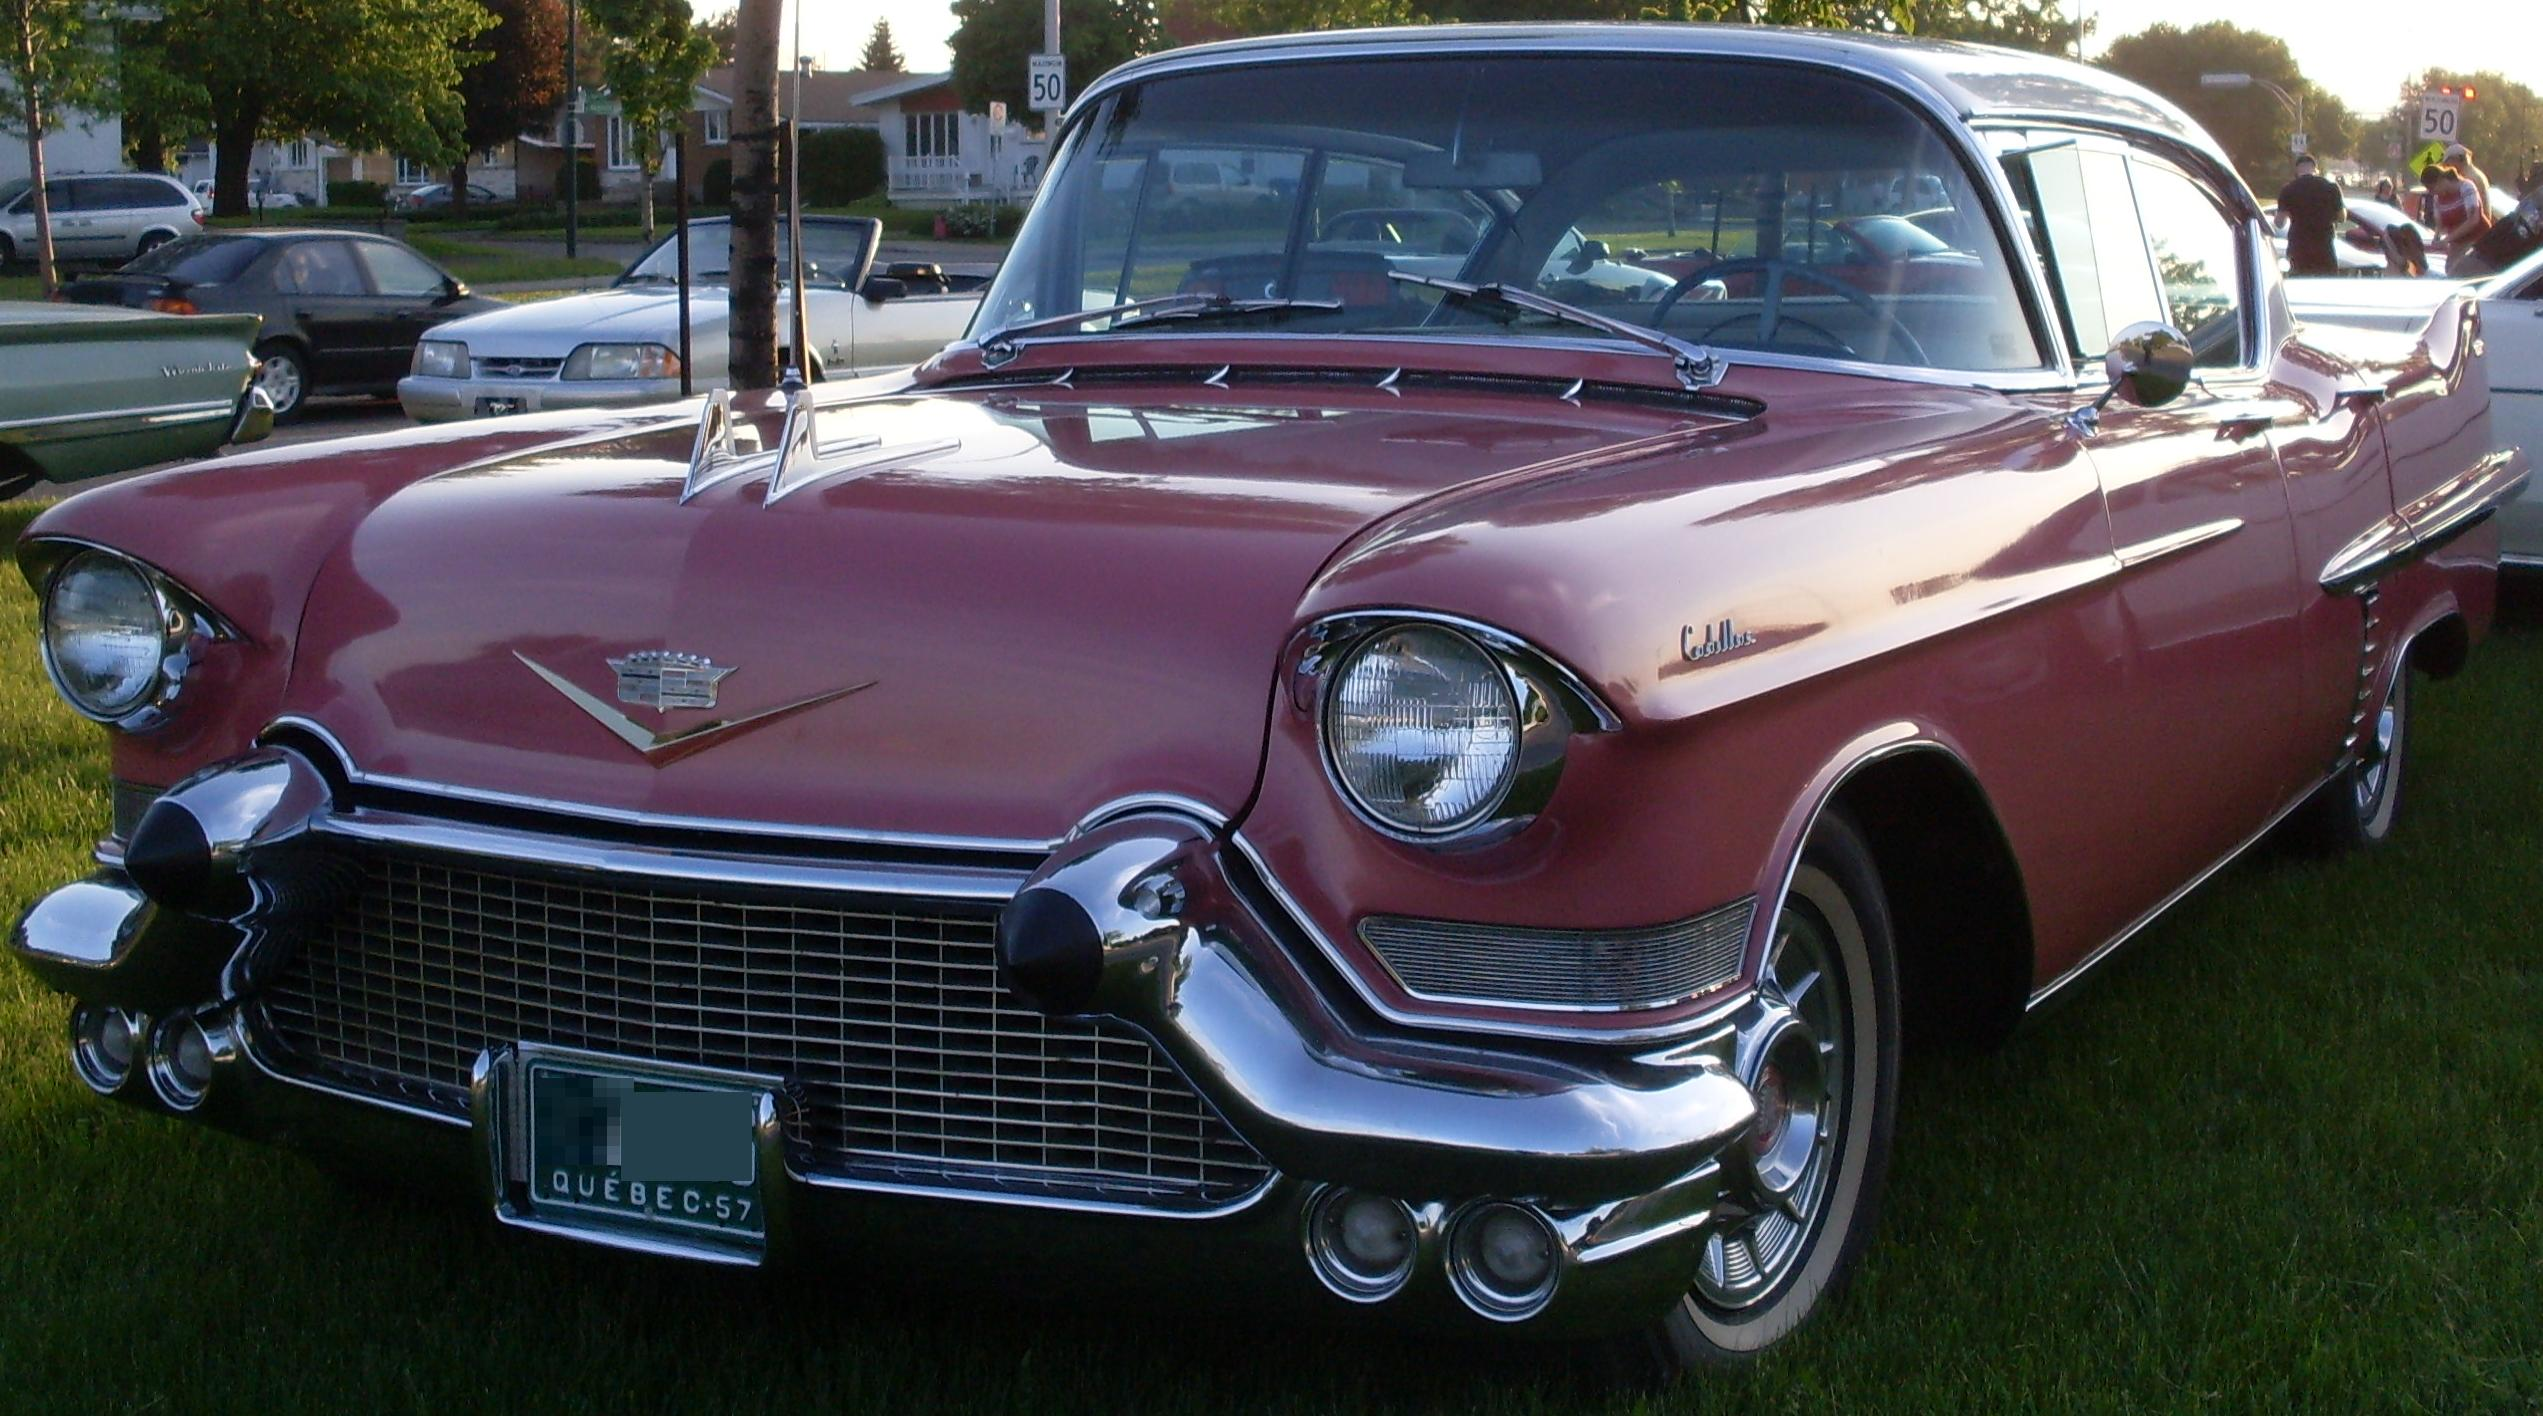 File:'57 Pink Cadillac (Auto clique Combos Express '13).JPG ...